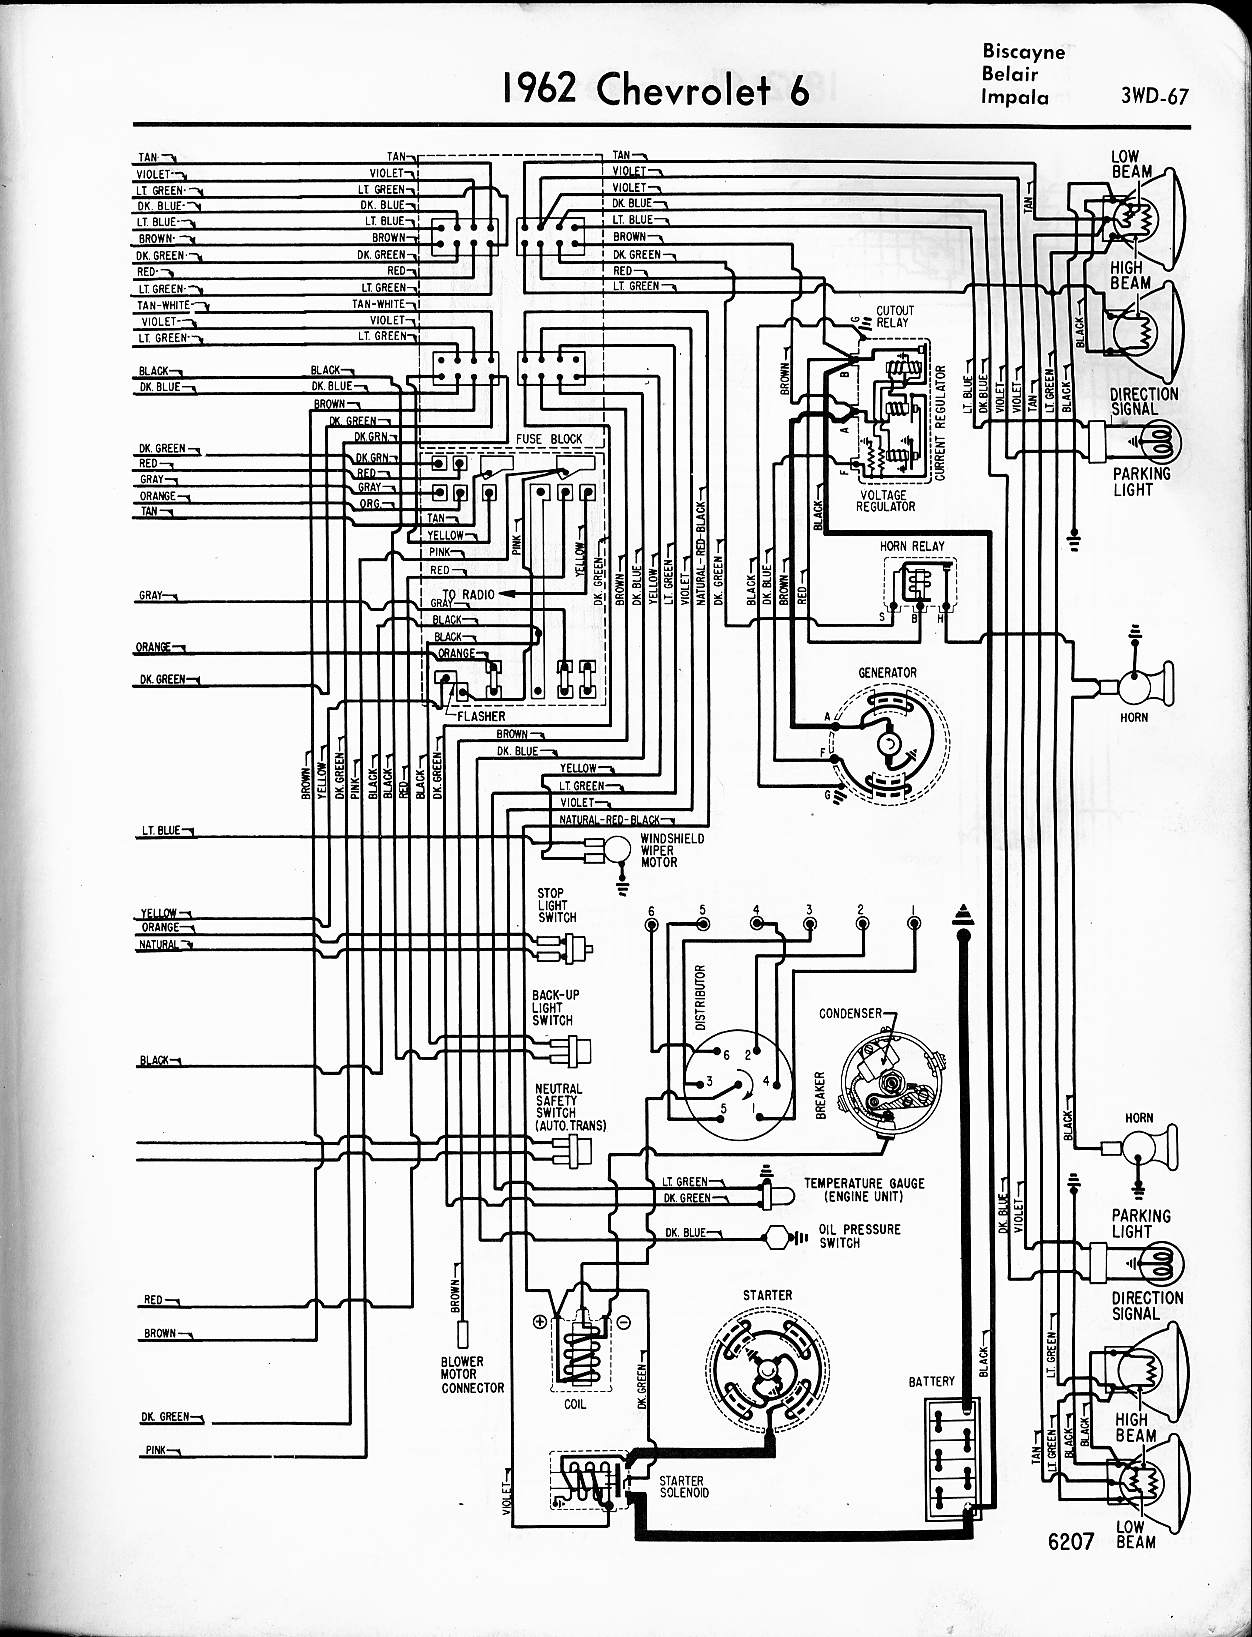 1962 Impala Wiring Diagram Just Wiring Data Fuel Gauge Graphic 1968 Impala  Fuel Gauge Diagram